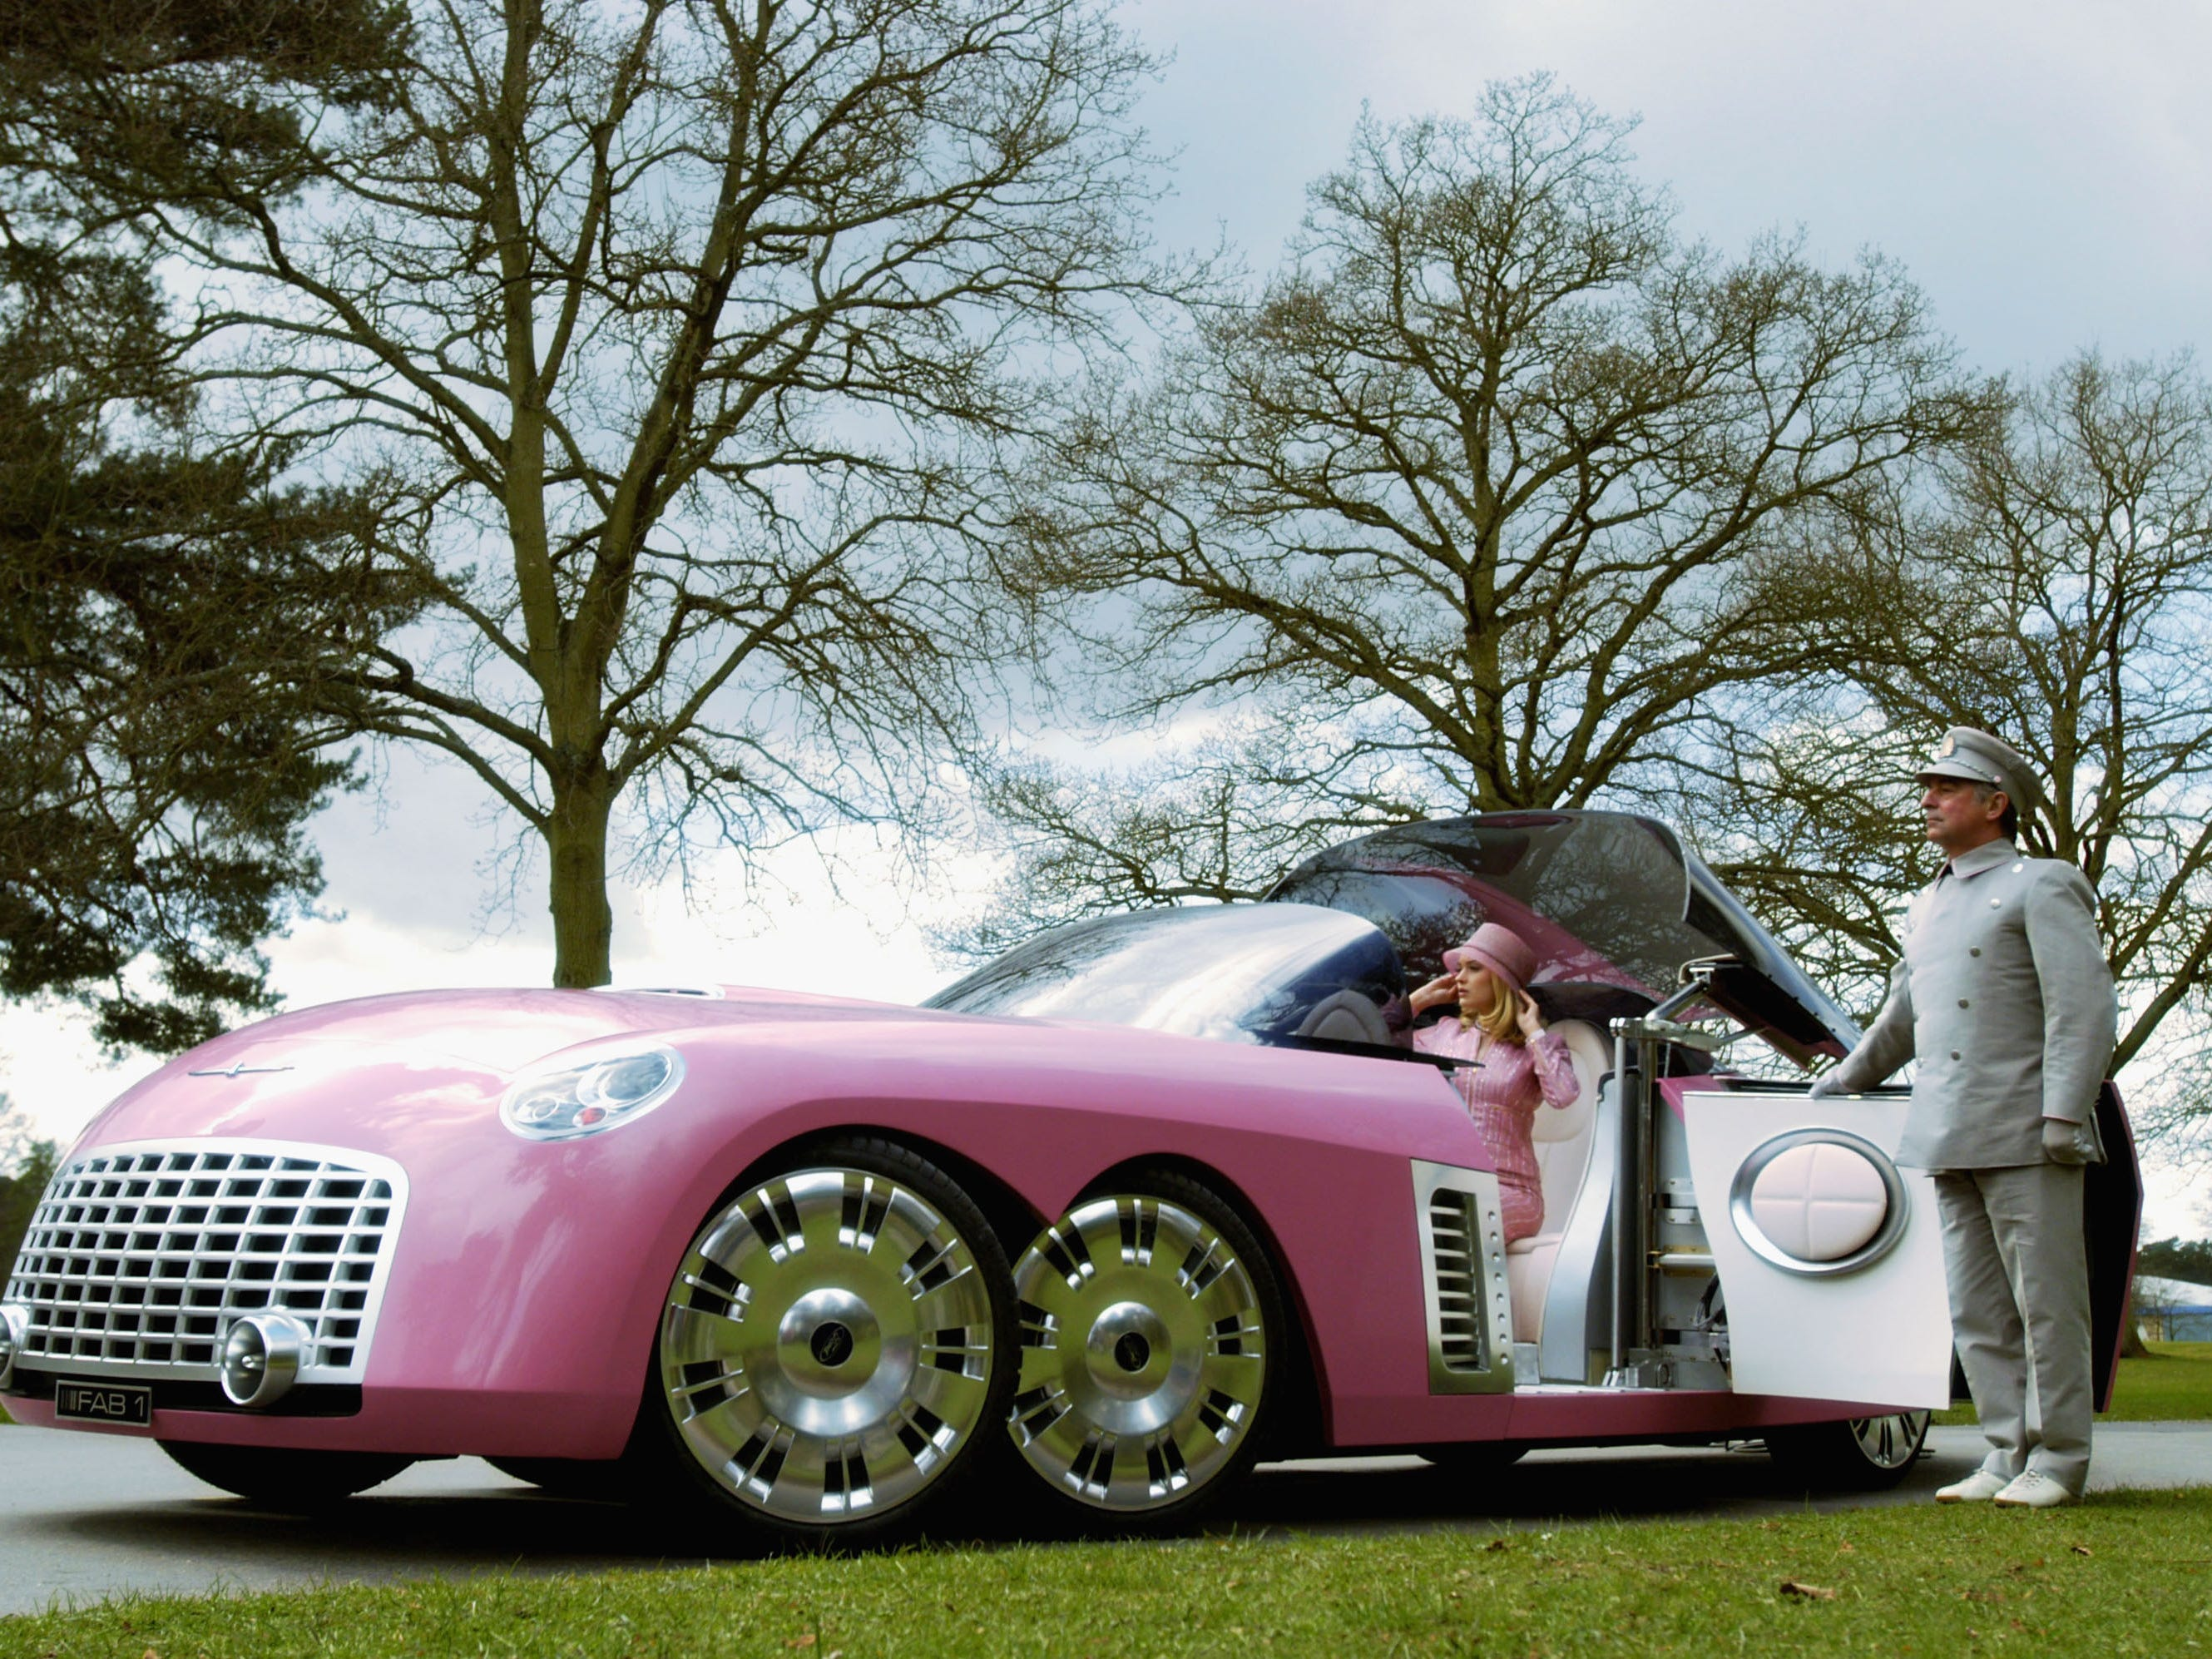 """This is a FAB 1 Limo unveiled on the set of the """"Thunderbirds"""" movie, April 2, 2003. The FAB 1 is 27 feet long and was built by hand in 12 weeks."""